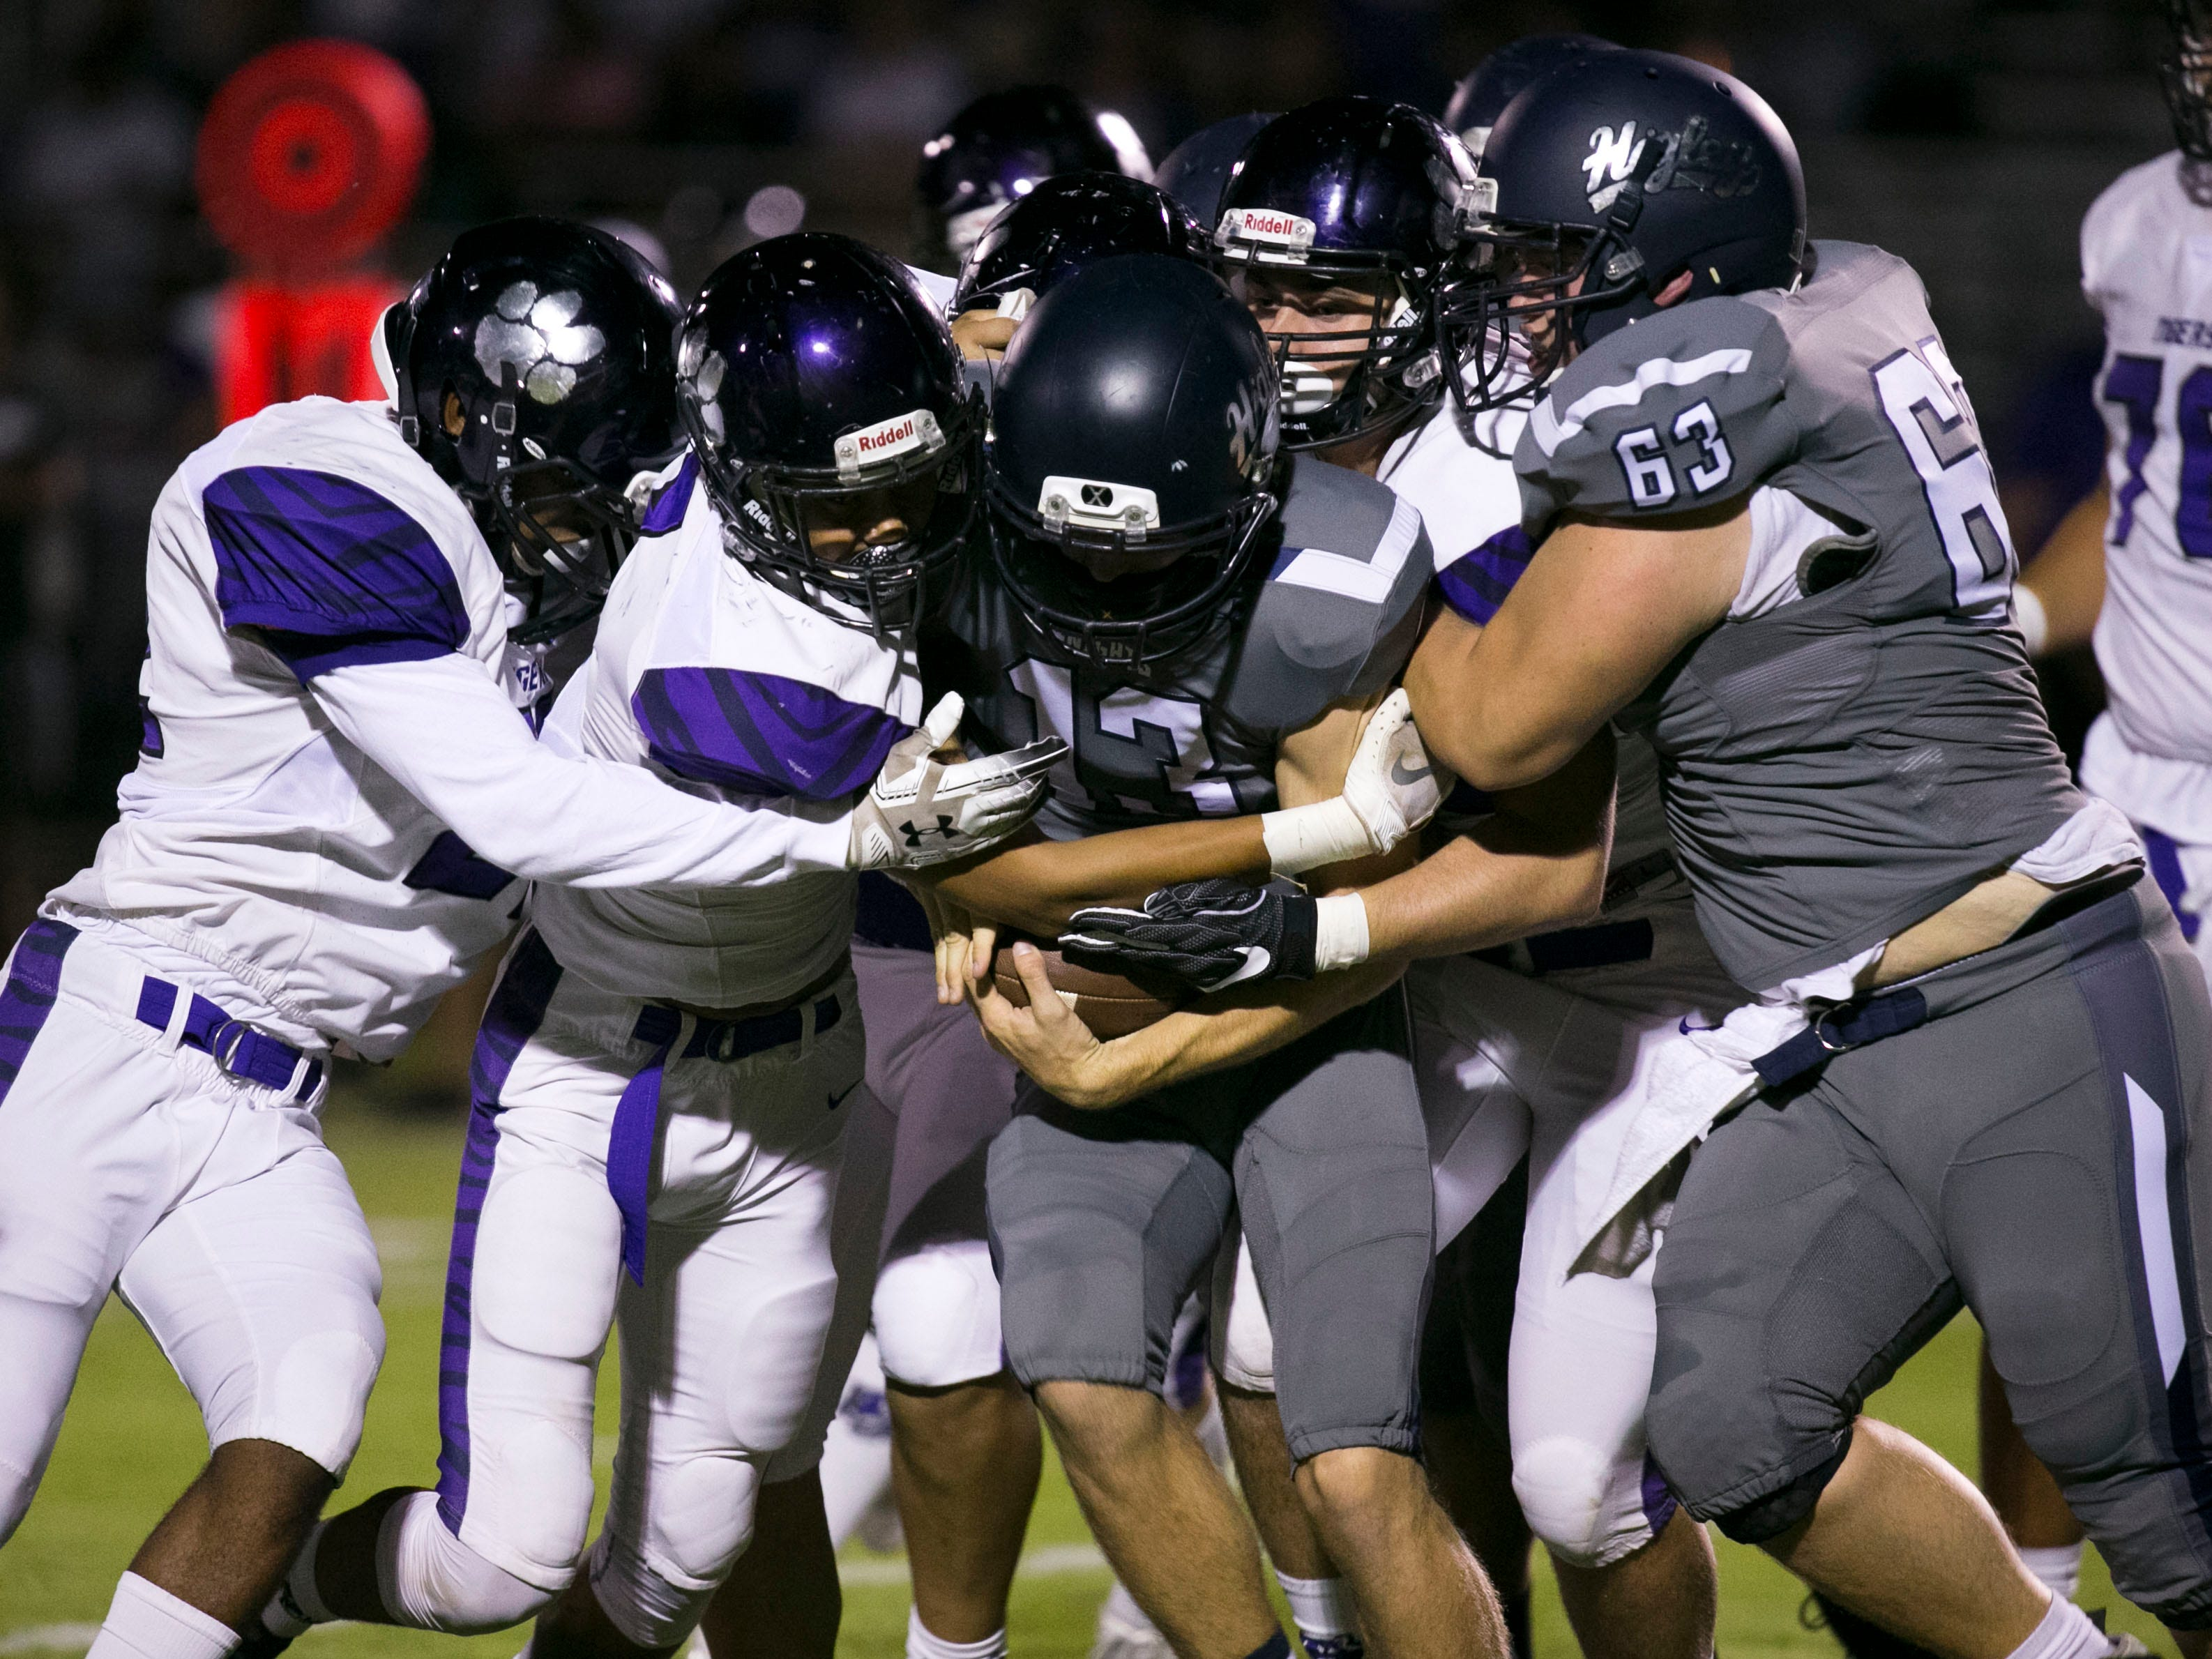 Higley High quarterback Spencer Brasch is tackled by a host of Millennium High defenders as Brasch gets a push from teammate Daniel McWilliams during the first quarter of the high school football game at Higley High in Gilbert on Friday evening, September 14, 2018.